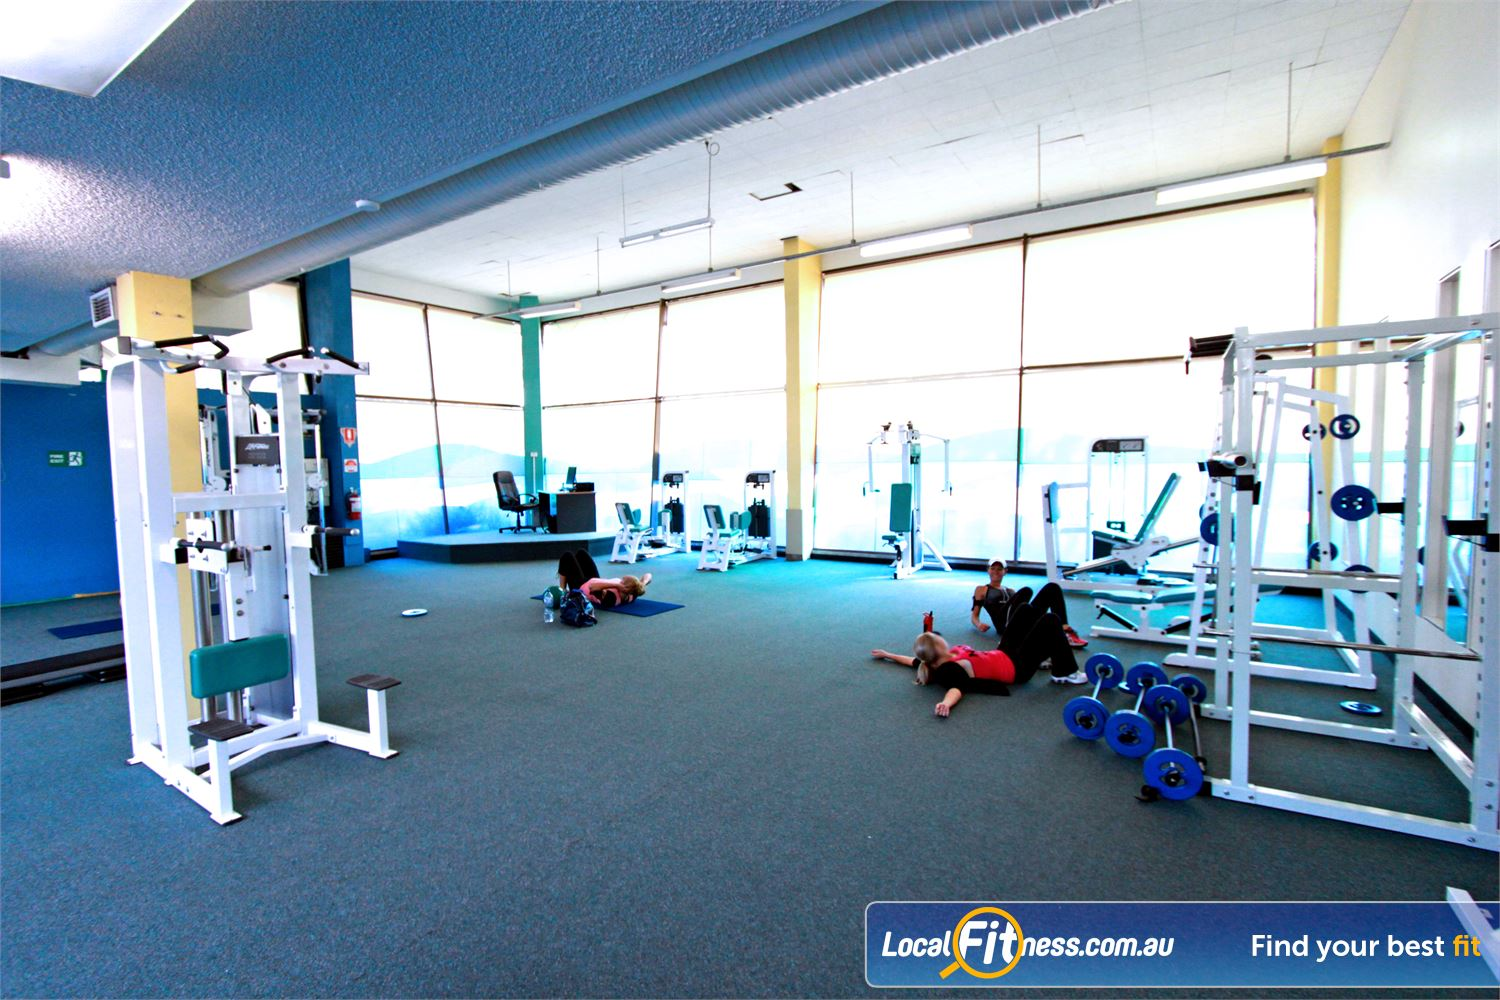 Fernwood Fitness Liverpool Not all women strength training is equal. Equipment matters!